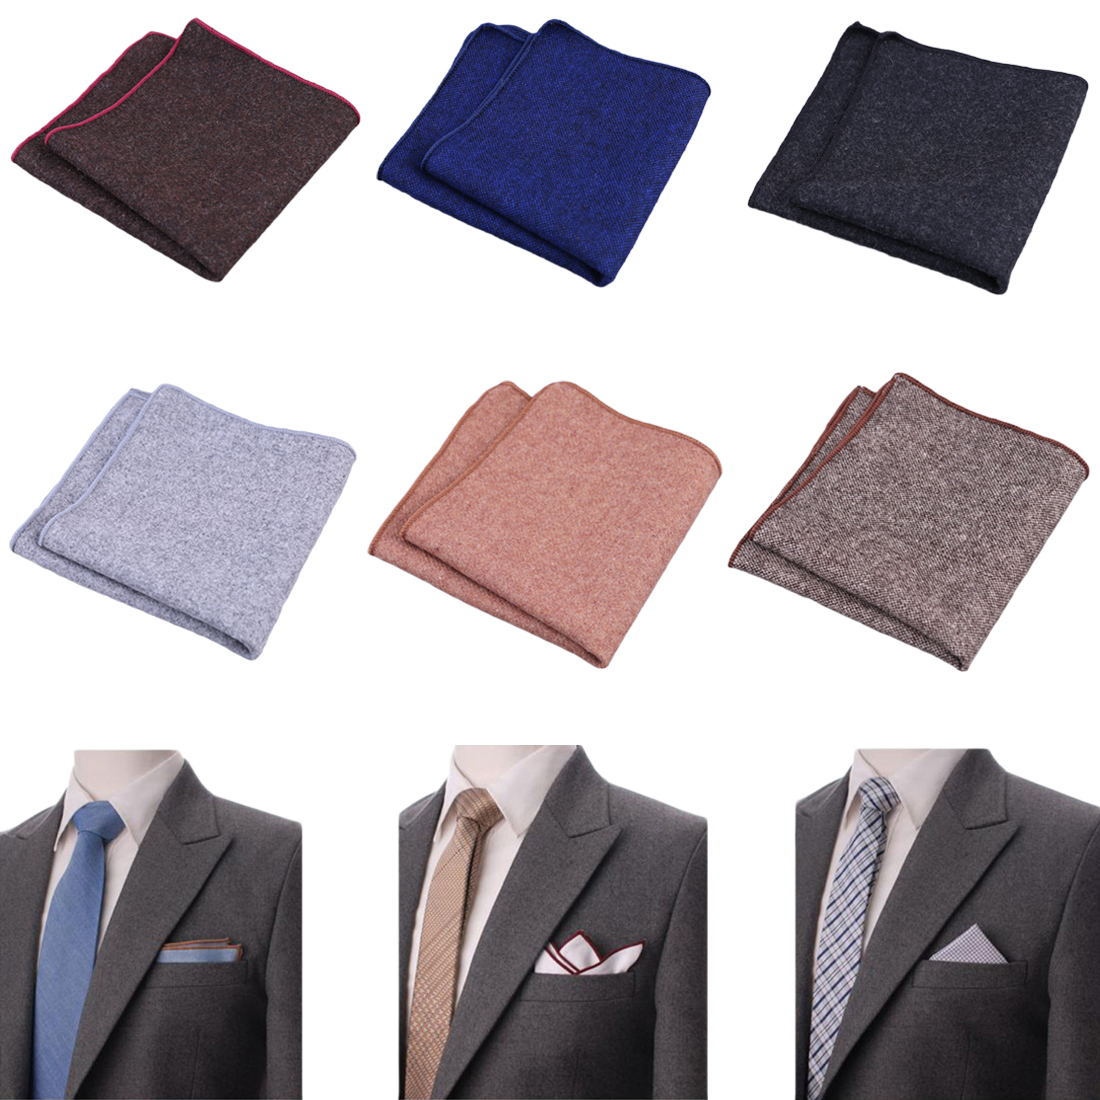 Comfortable Hankerchief Scarves Vintage Wool Hankies Men's Pocket Square Handkerchiefs Striped Solid Cotton 23*23cm